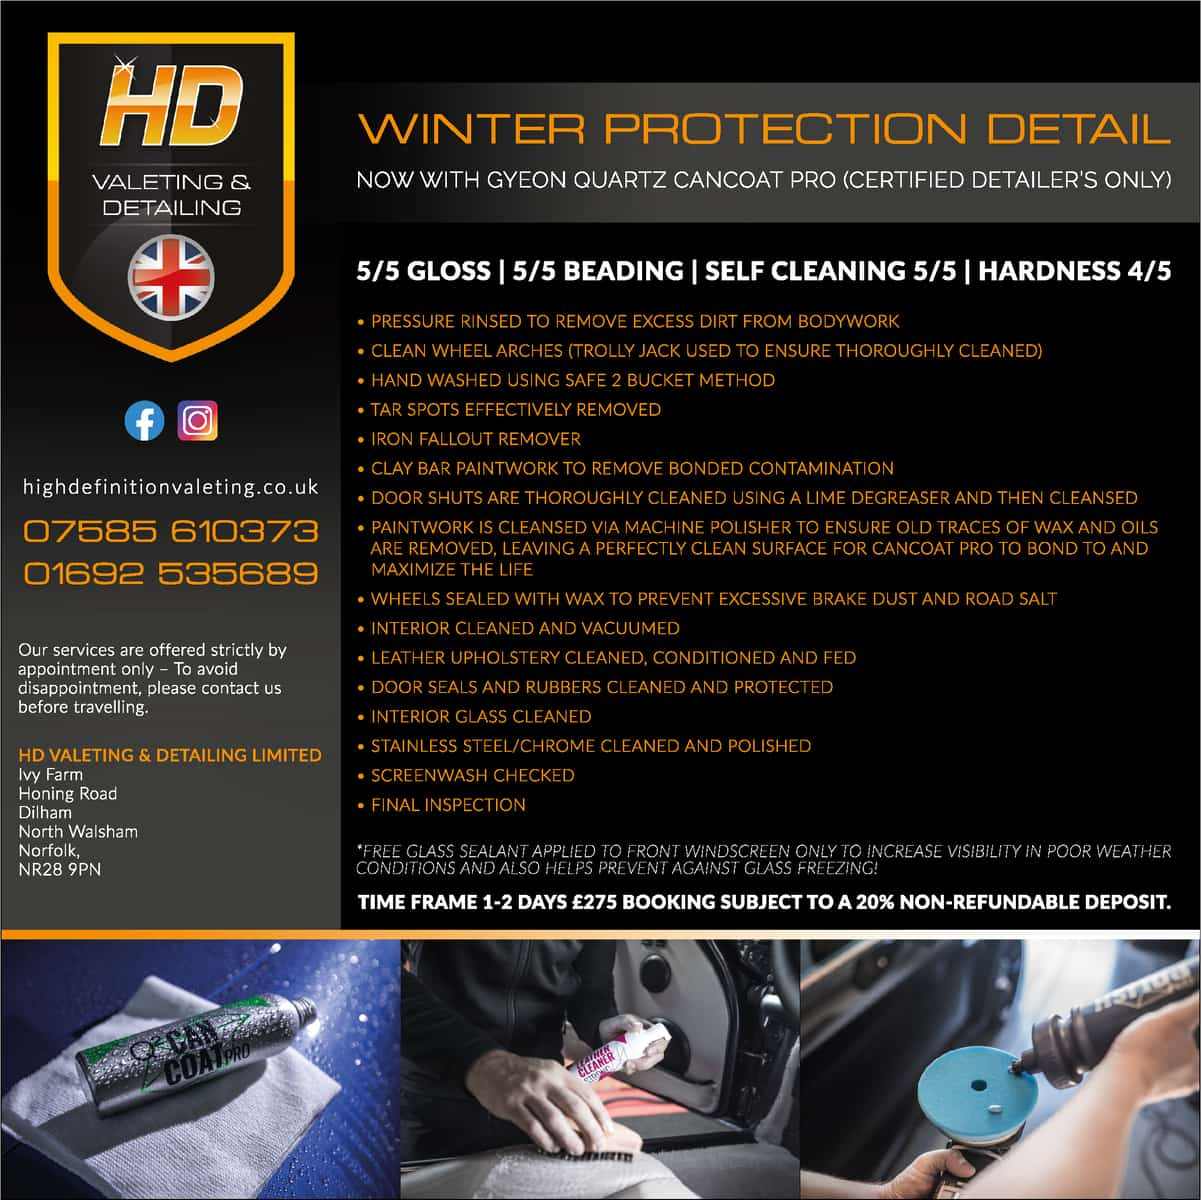 Winter Protection Detail